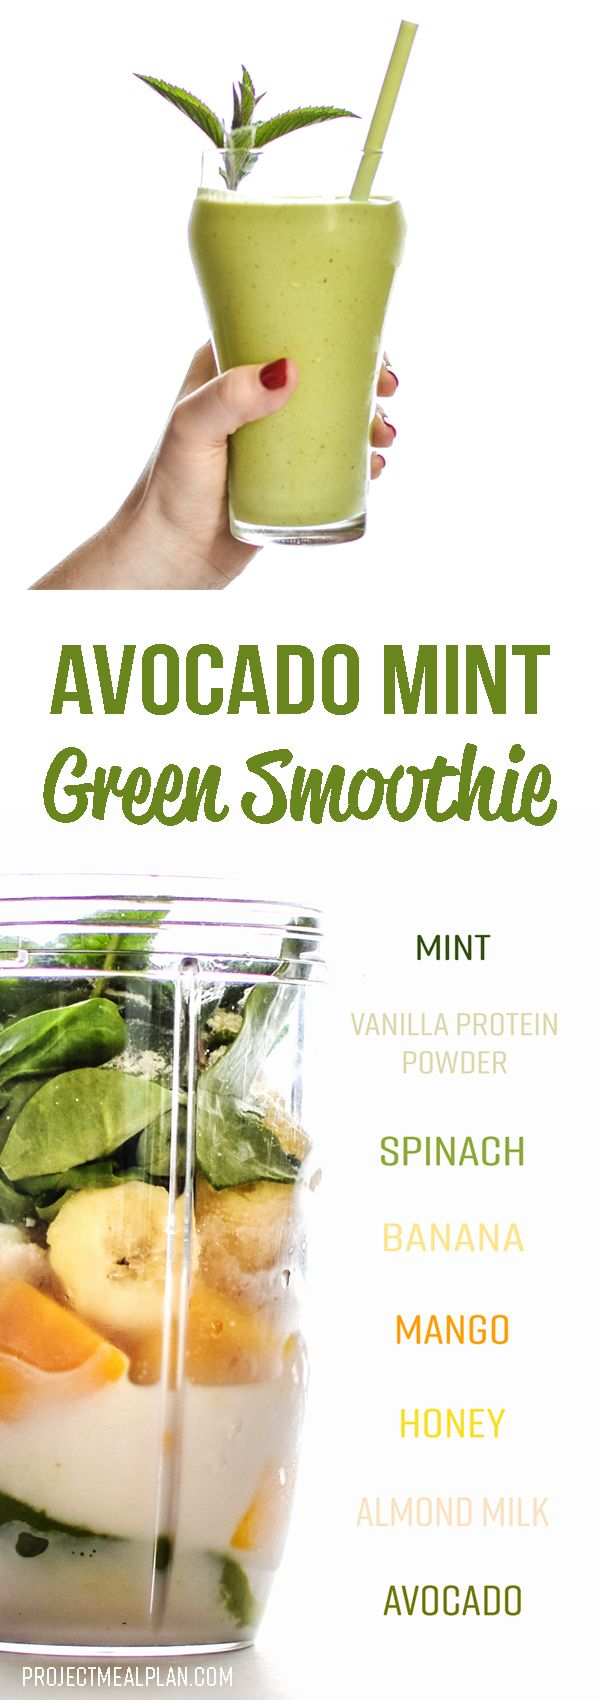 Creamy Avocado Mint Green Smoothie Recipe - Overflowing with fruits, veggies, and fresh minty goodness, like a summer shamrock shake! - ProjectMealPlan.com